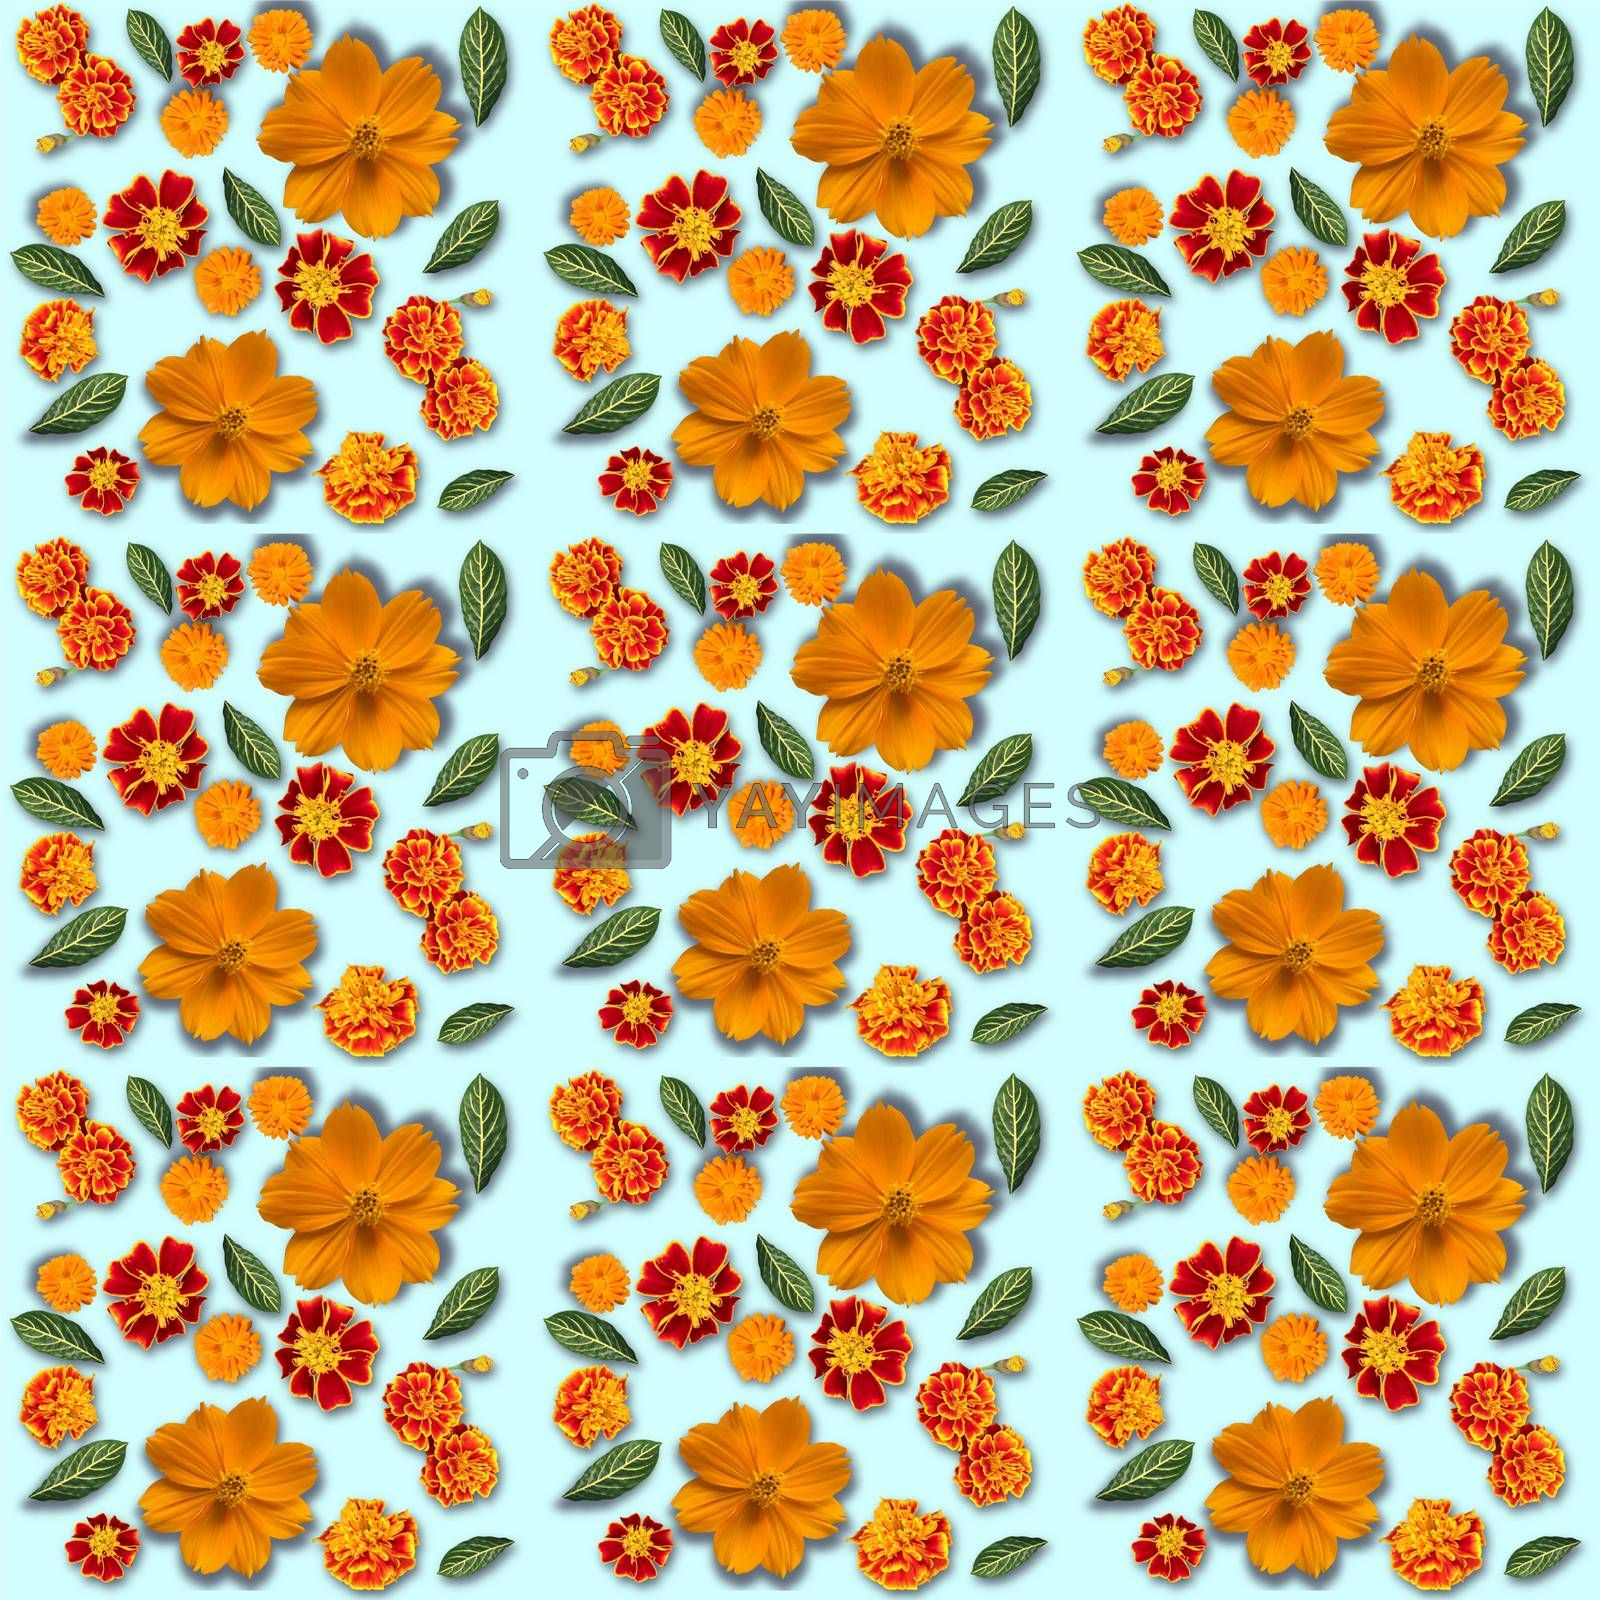 Yellow flowers pattern on a blue background. Cosmos, marigold and calendula flowers composition. Top view.